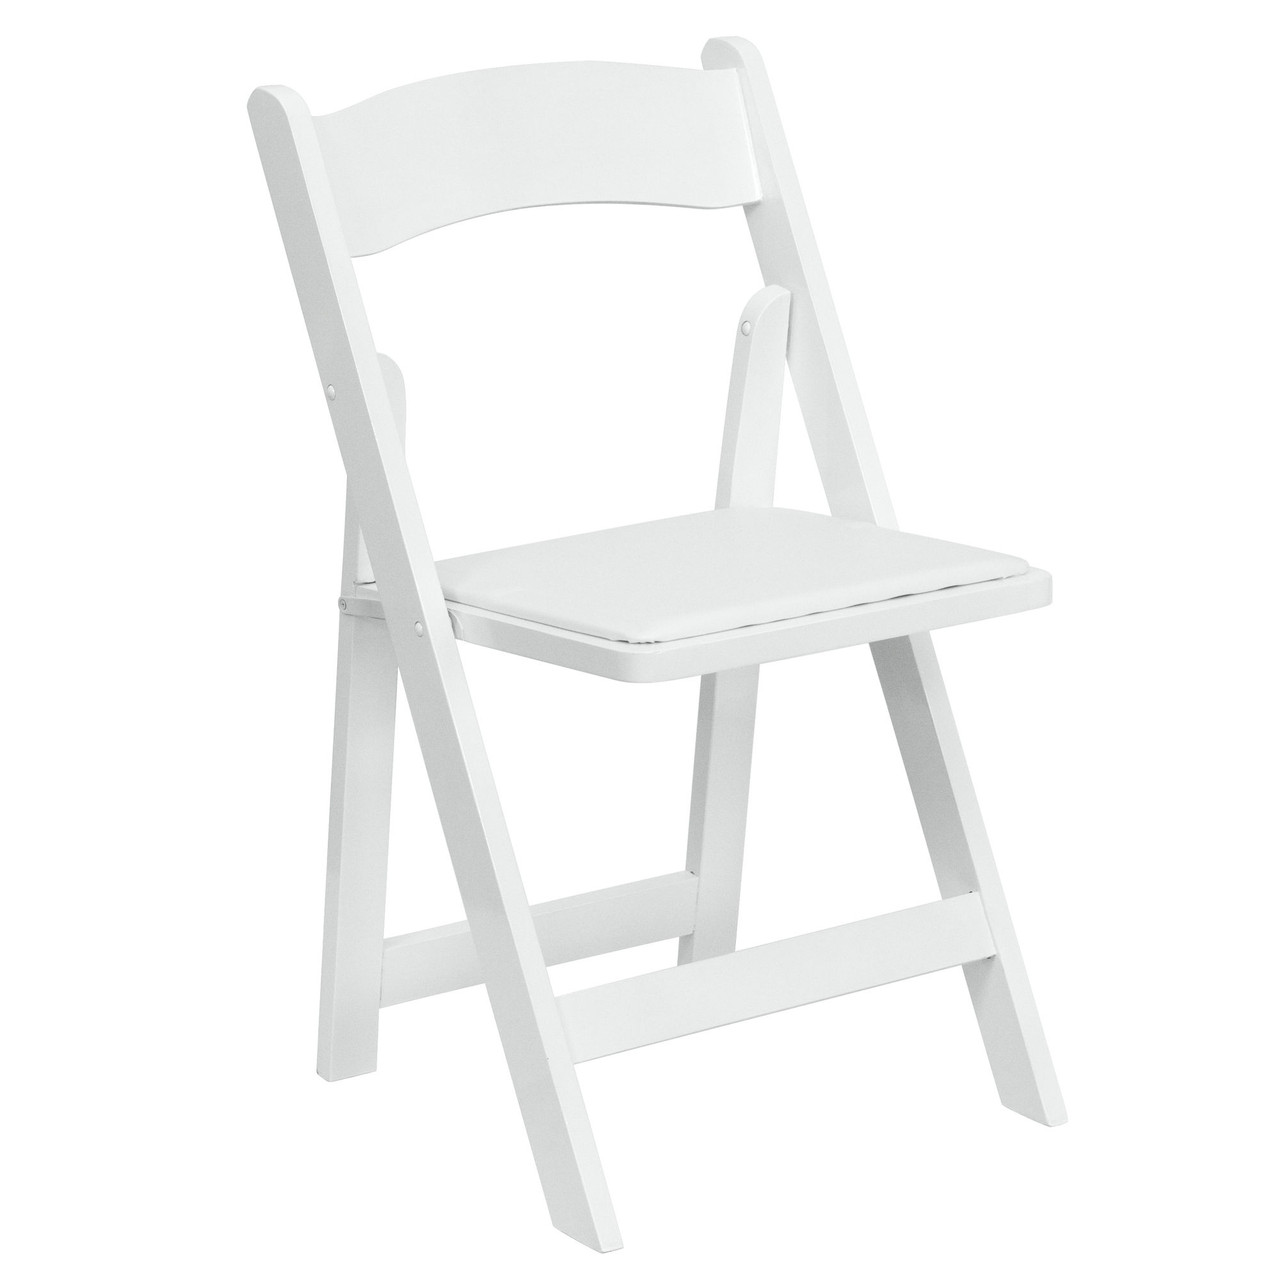 Surprising White Wood Folding Wedding Chairs Xf 2901 Wh Wood Gg Ibusinesslaw Wood Chair Design Ideas Ibusinesslaworg